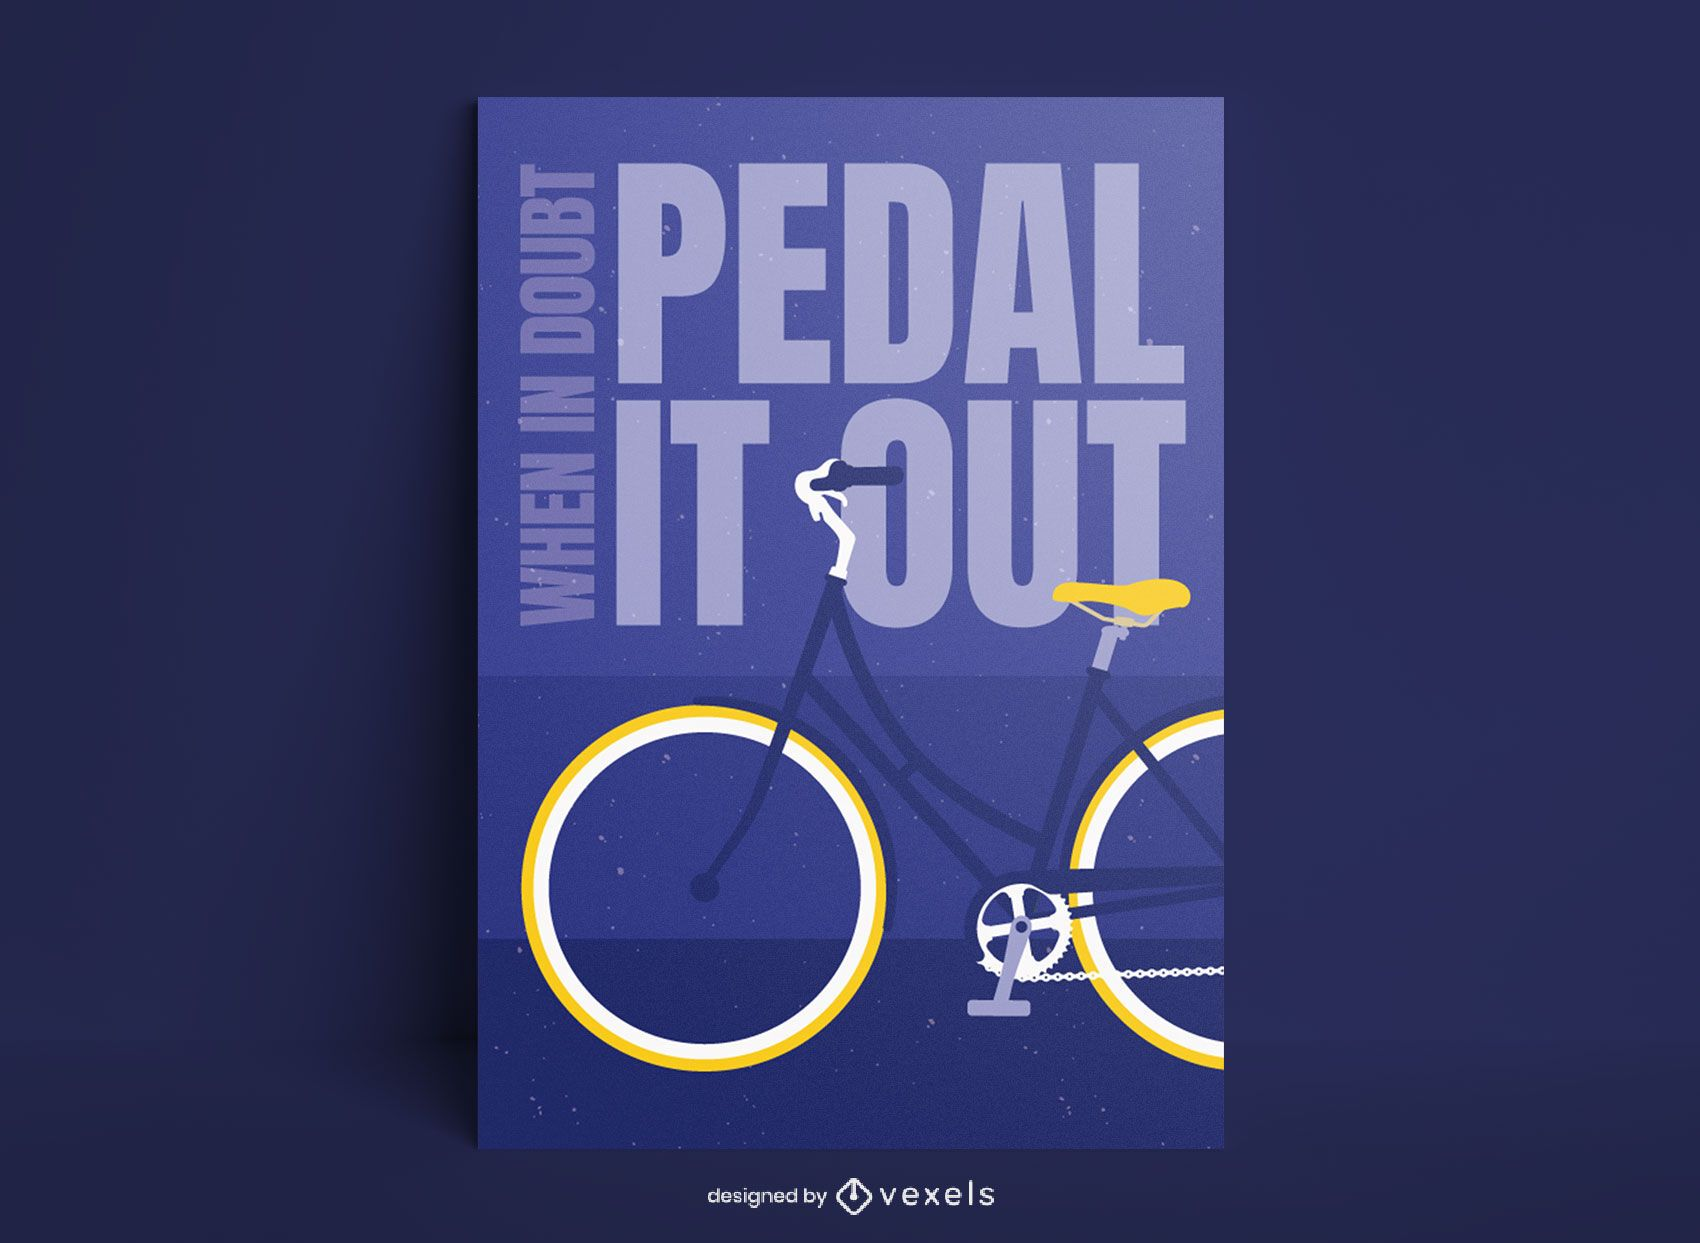 Flat cycling quote poster